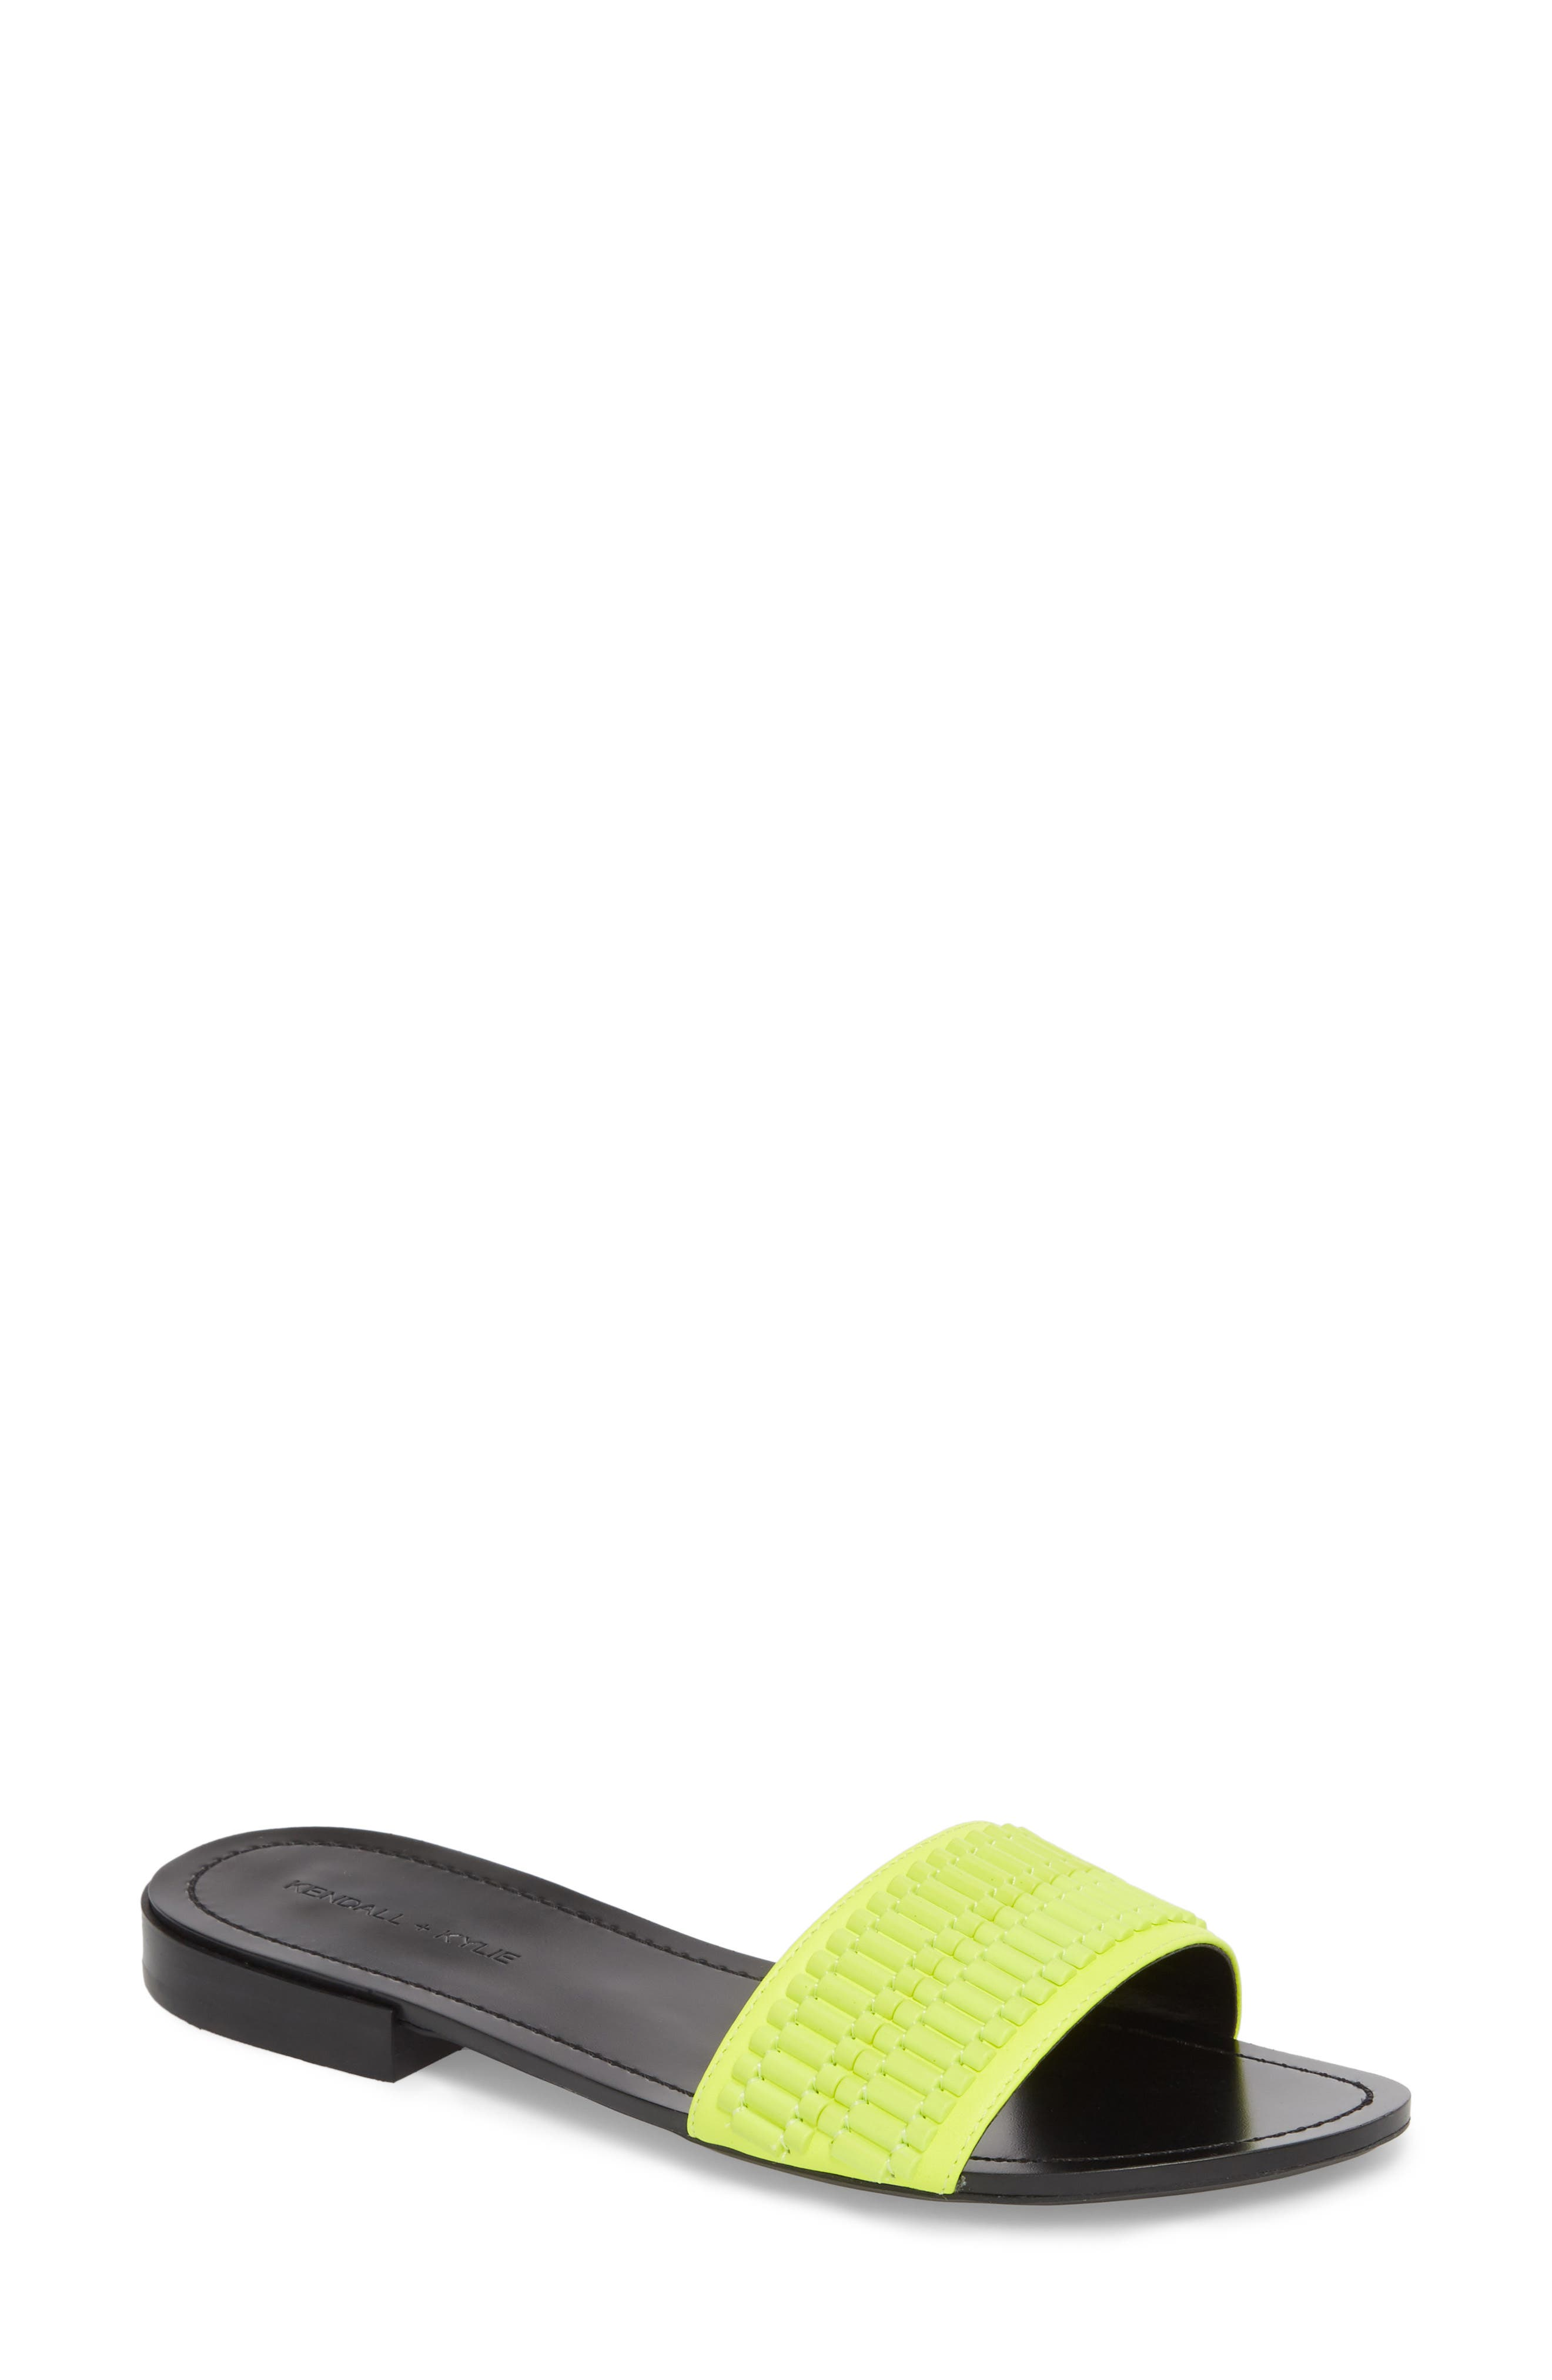 Kennedy Slide Sandal,                         Main,                         color, FLUORESCENT YELLOW/ YELLOW